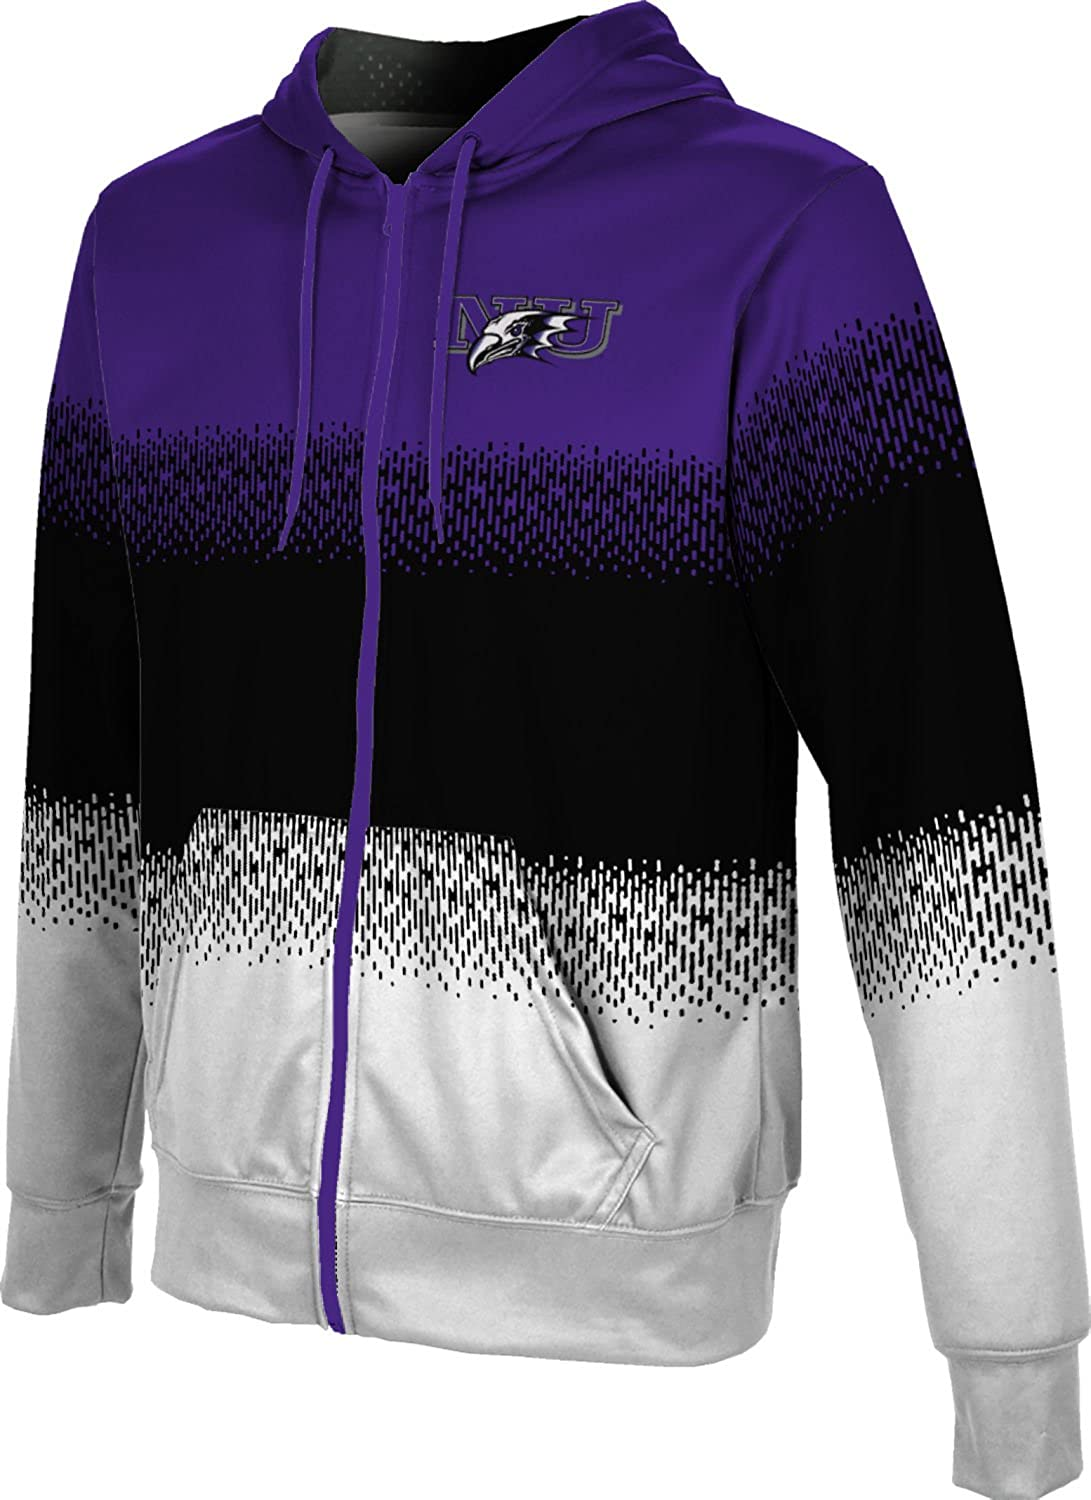 ProSphere Niagara University Boys Full Zip Hoodie Drip